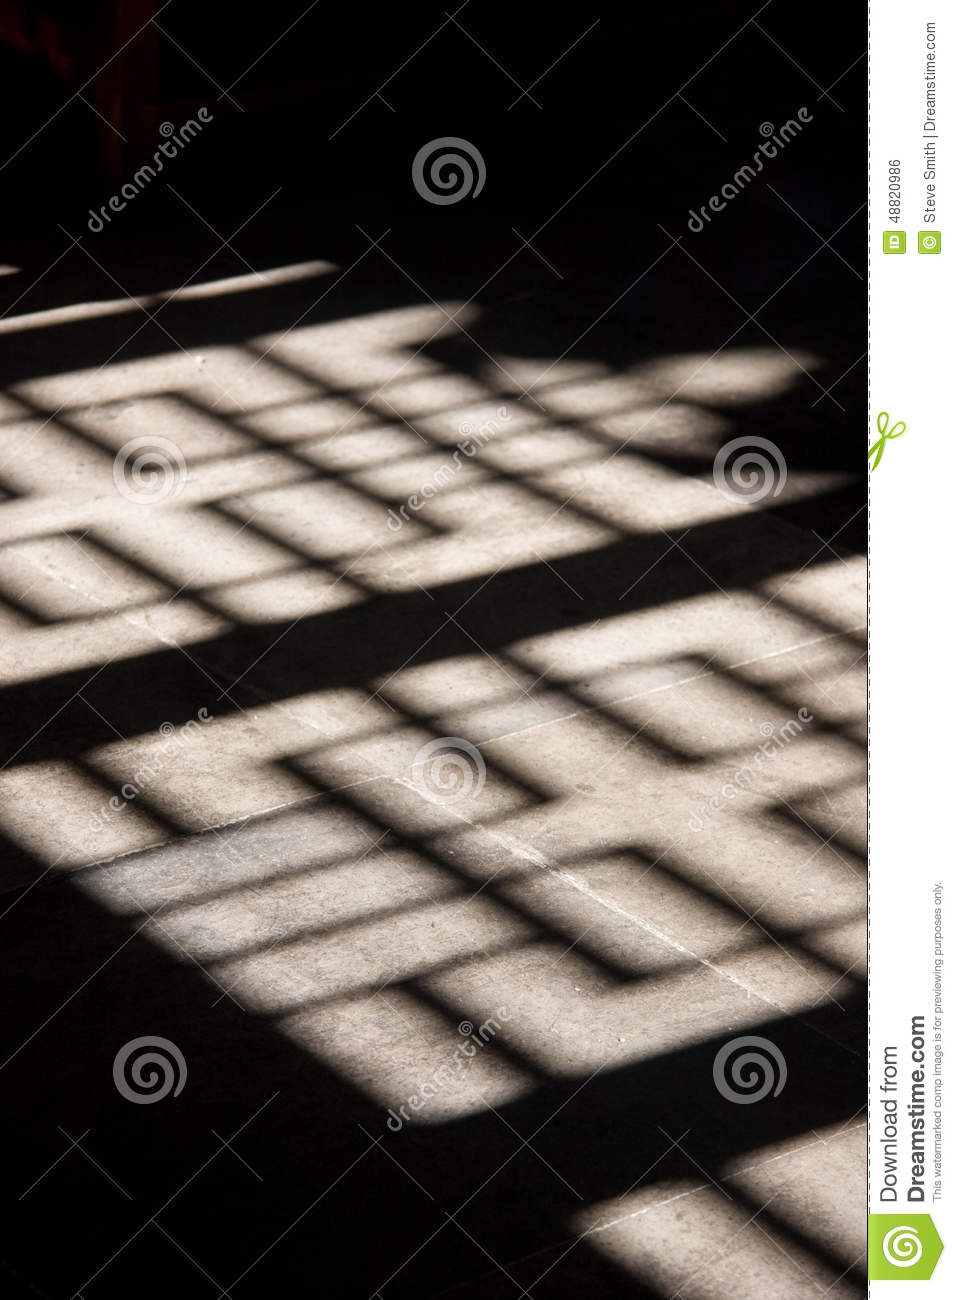 Ornate wooden screen casts interesting shadow on stone floor.